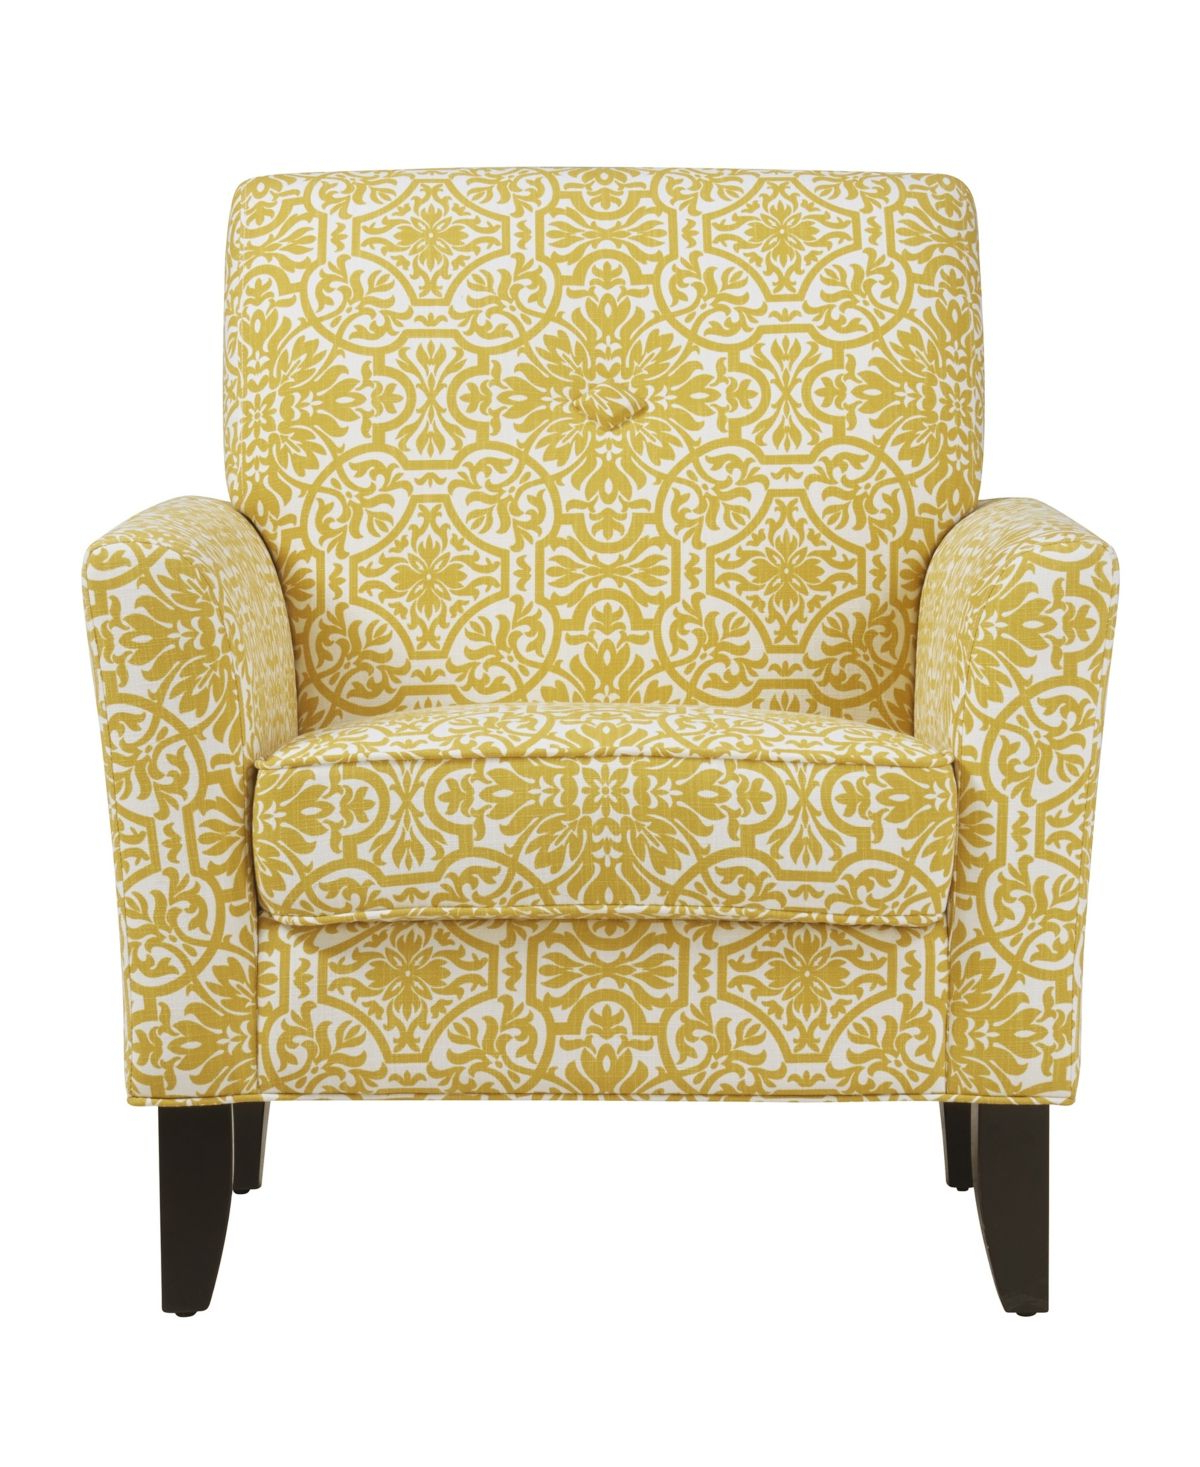 2020 Pin On Chairs Throughout Louisburg Armchairs (View 13 of 20)